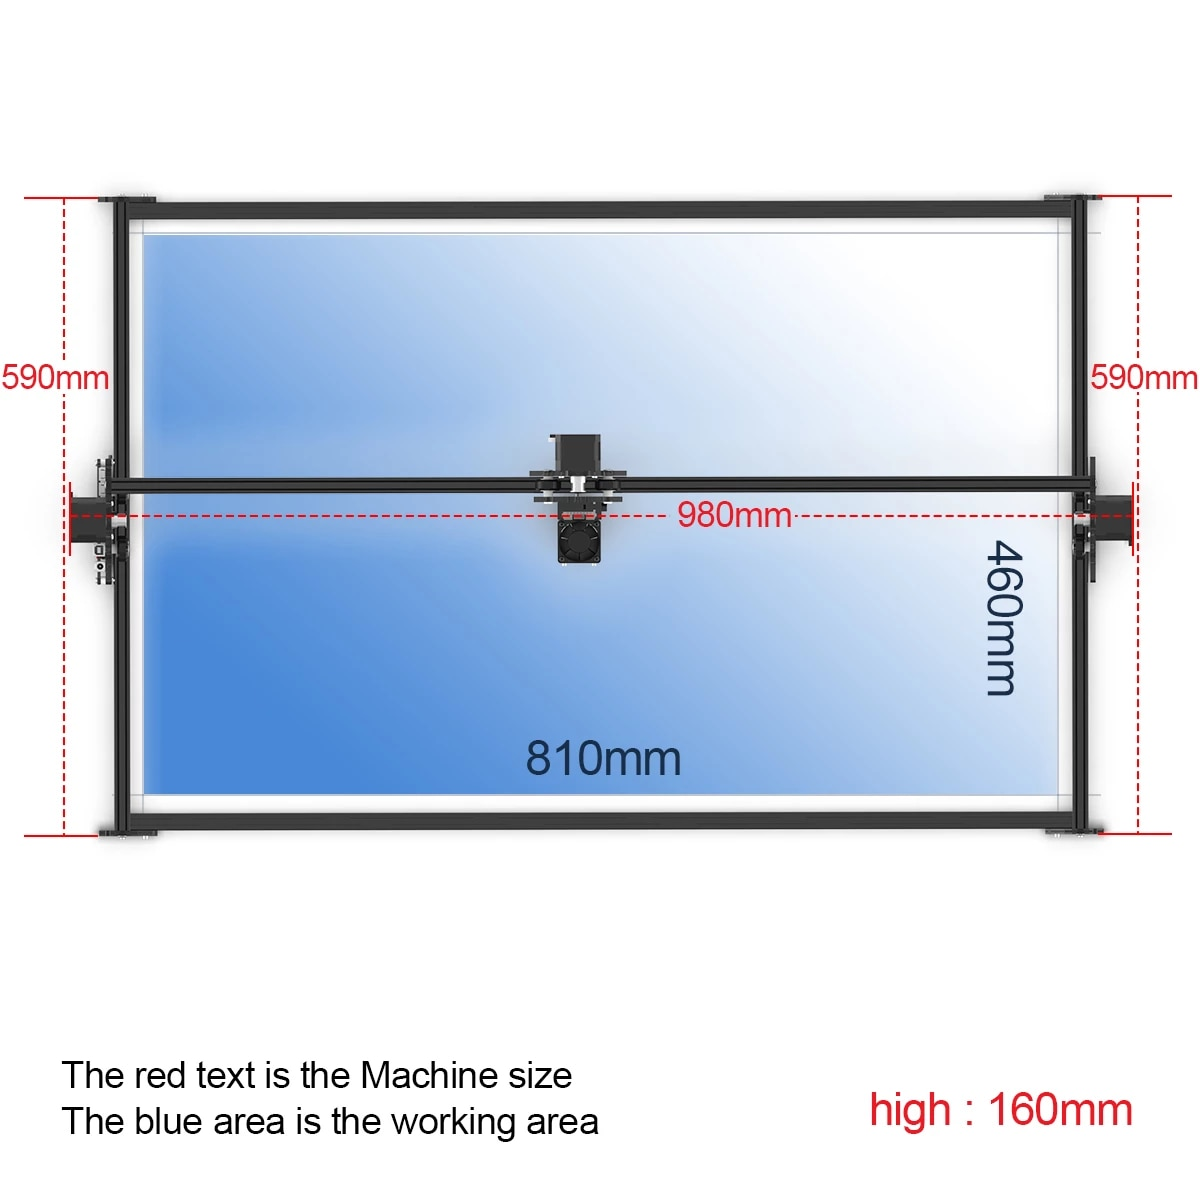 NEJE Master 2S Max 40W/50W/80W High Precision CNC Laser Wood Cutter Engraving Machine Router Lightburn LaserBRBL with Bluetooth enlarge